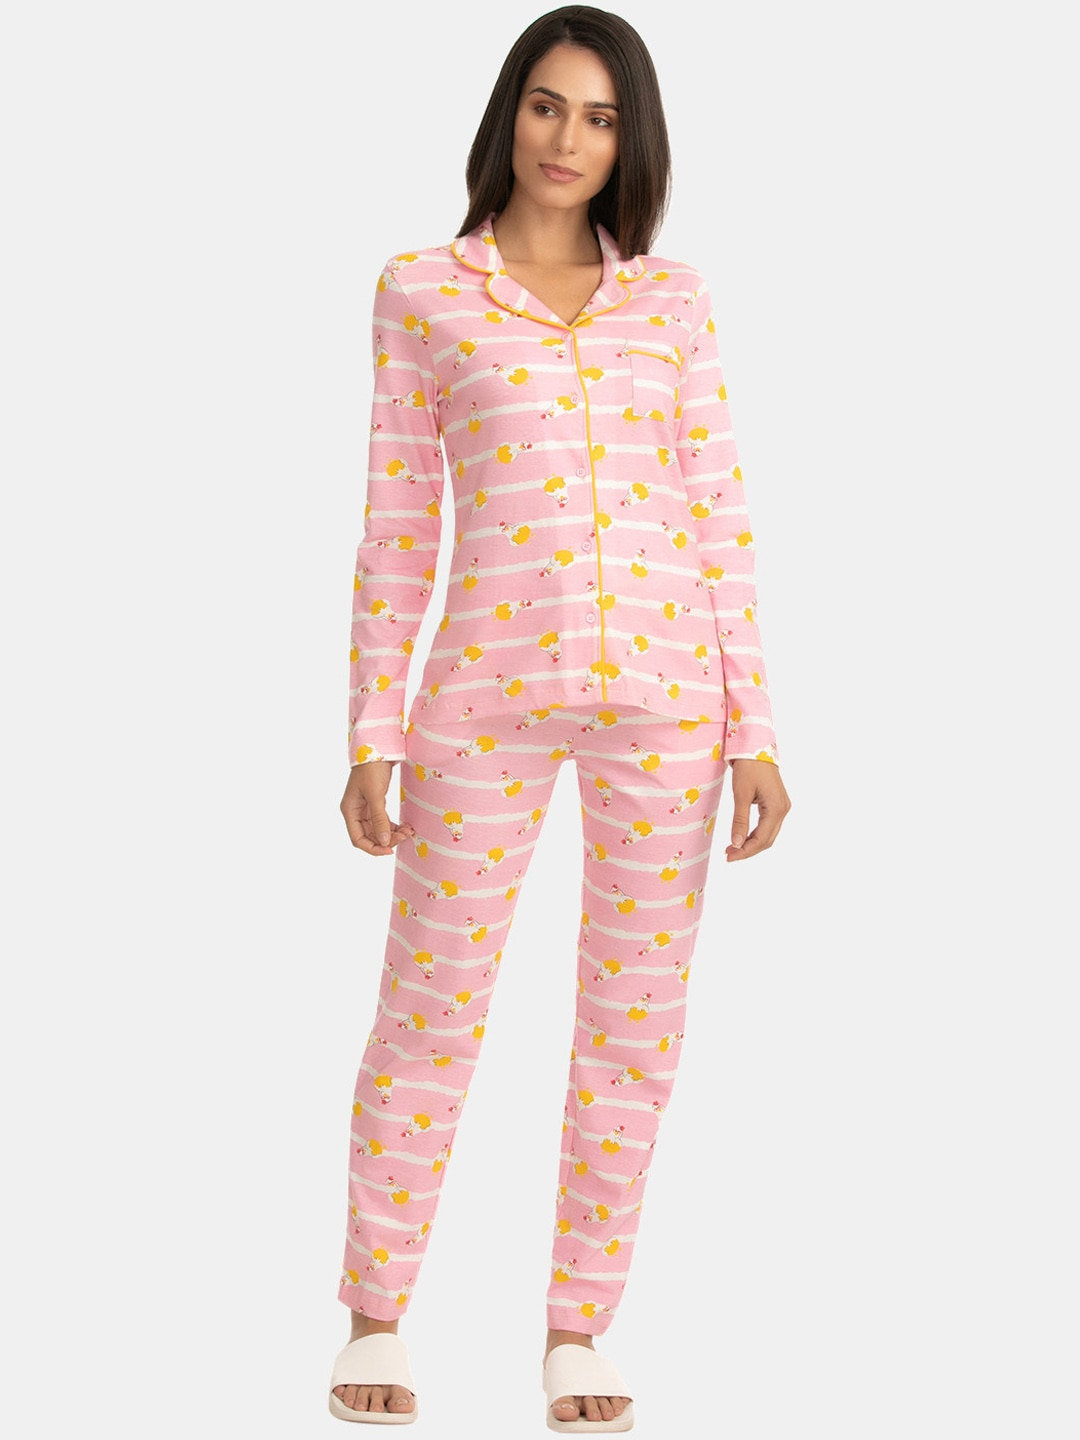 fddcd65d7192 Women Loungewear   Nightwear - Buy Women Nightwear   Loungewear online -  Myntra